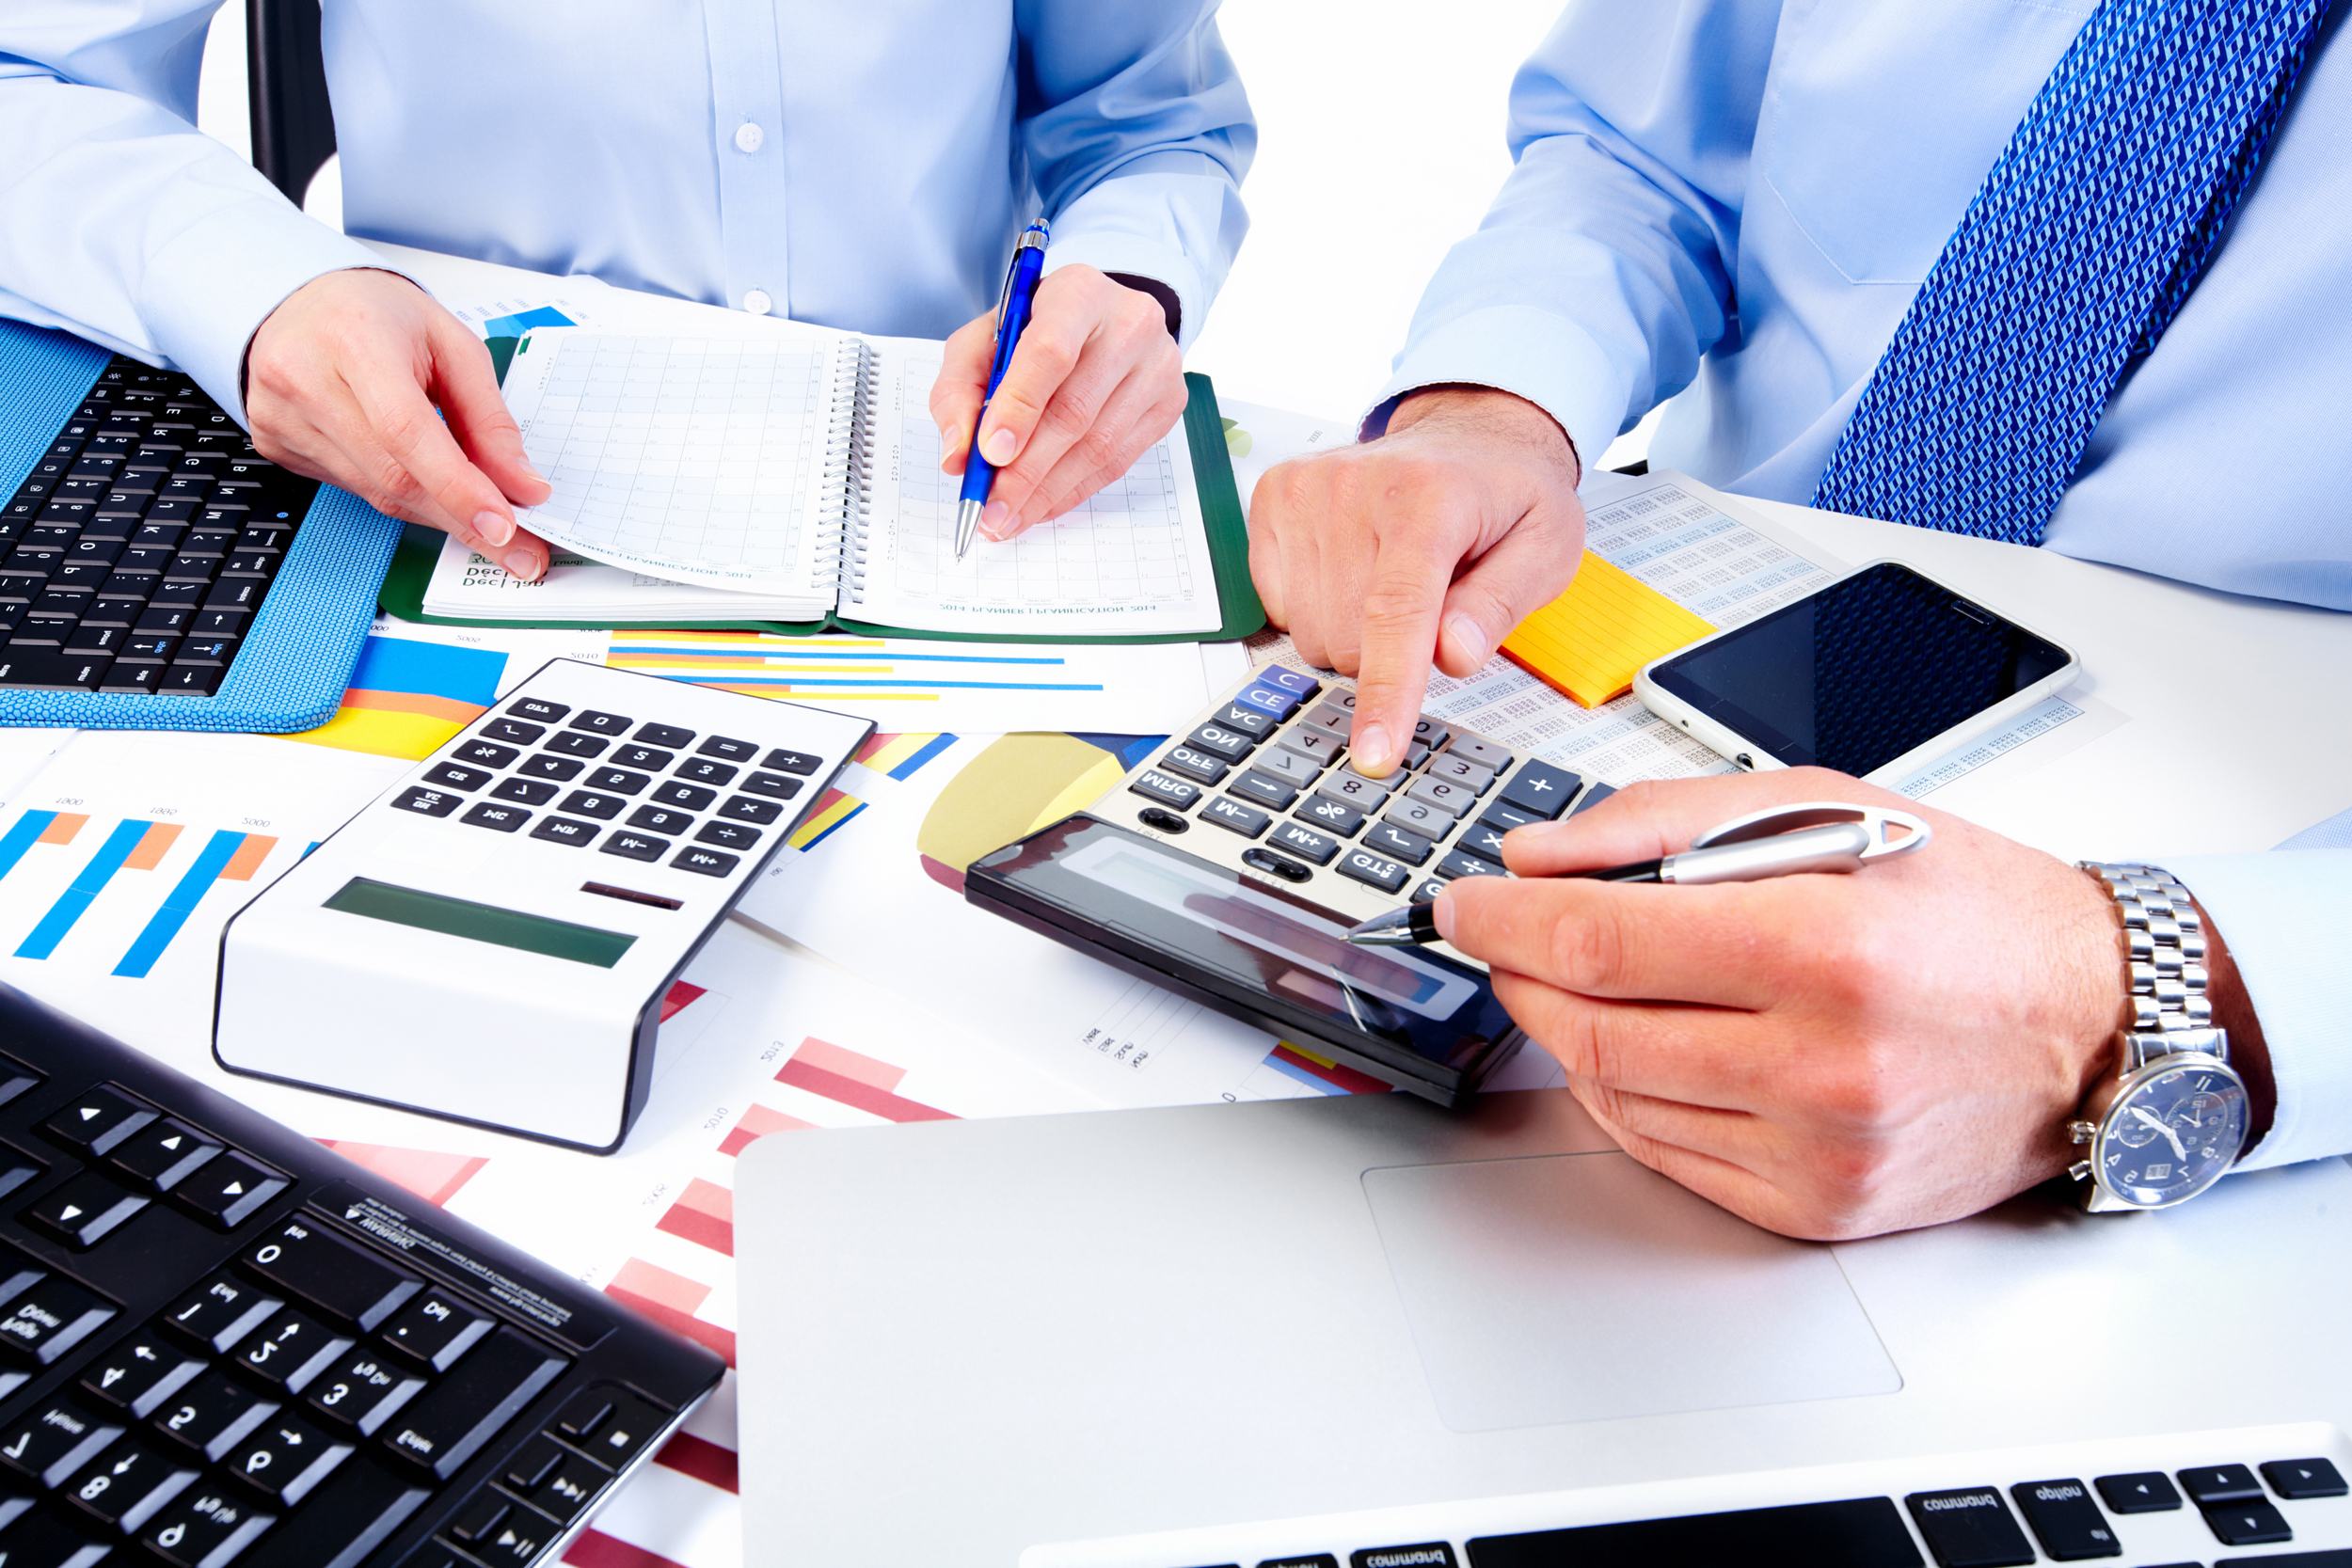 Accounting Advisory   We provide accounting advisory services to support our clients in managing the accounting complexity and change that comes from the adoption of complex new accounting standards and GAAP conversions as well as accounting support services for regulatory compliance.